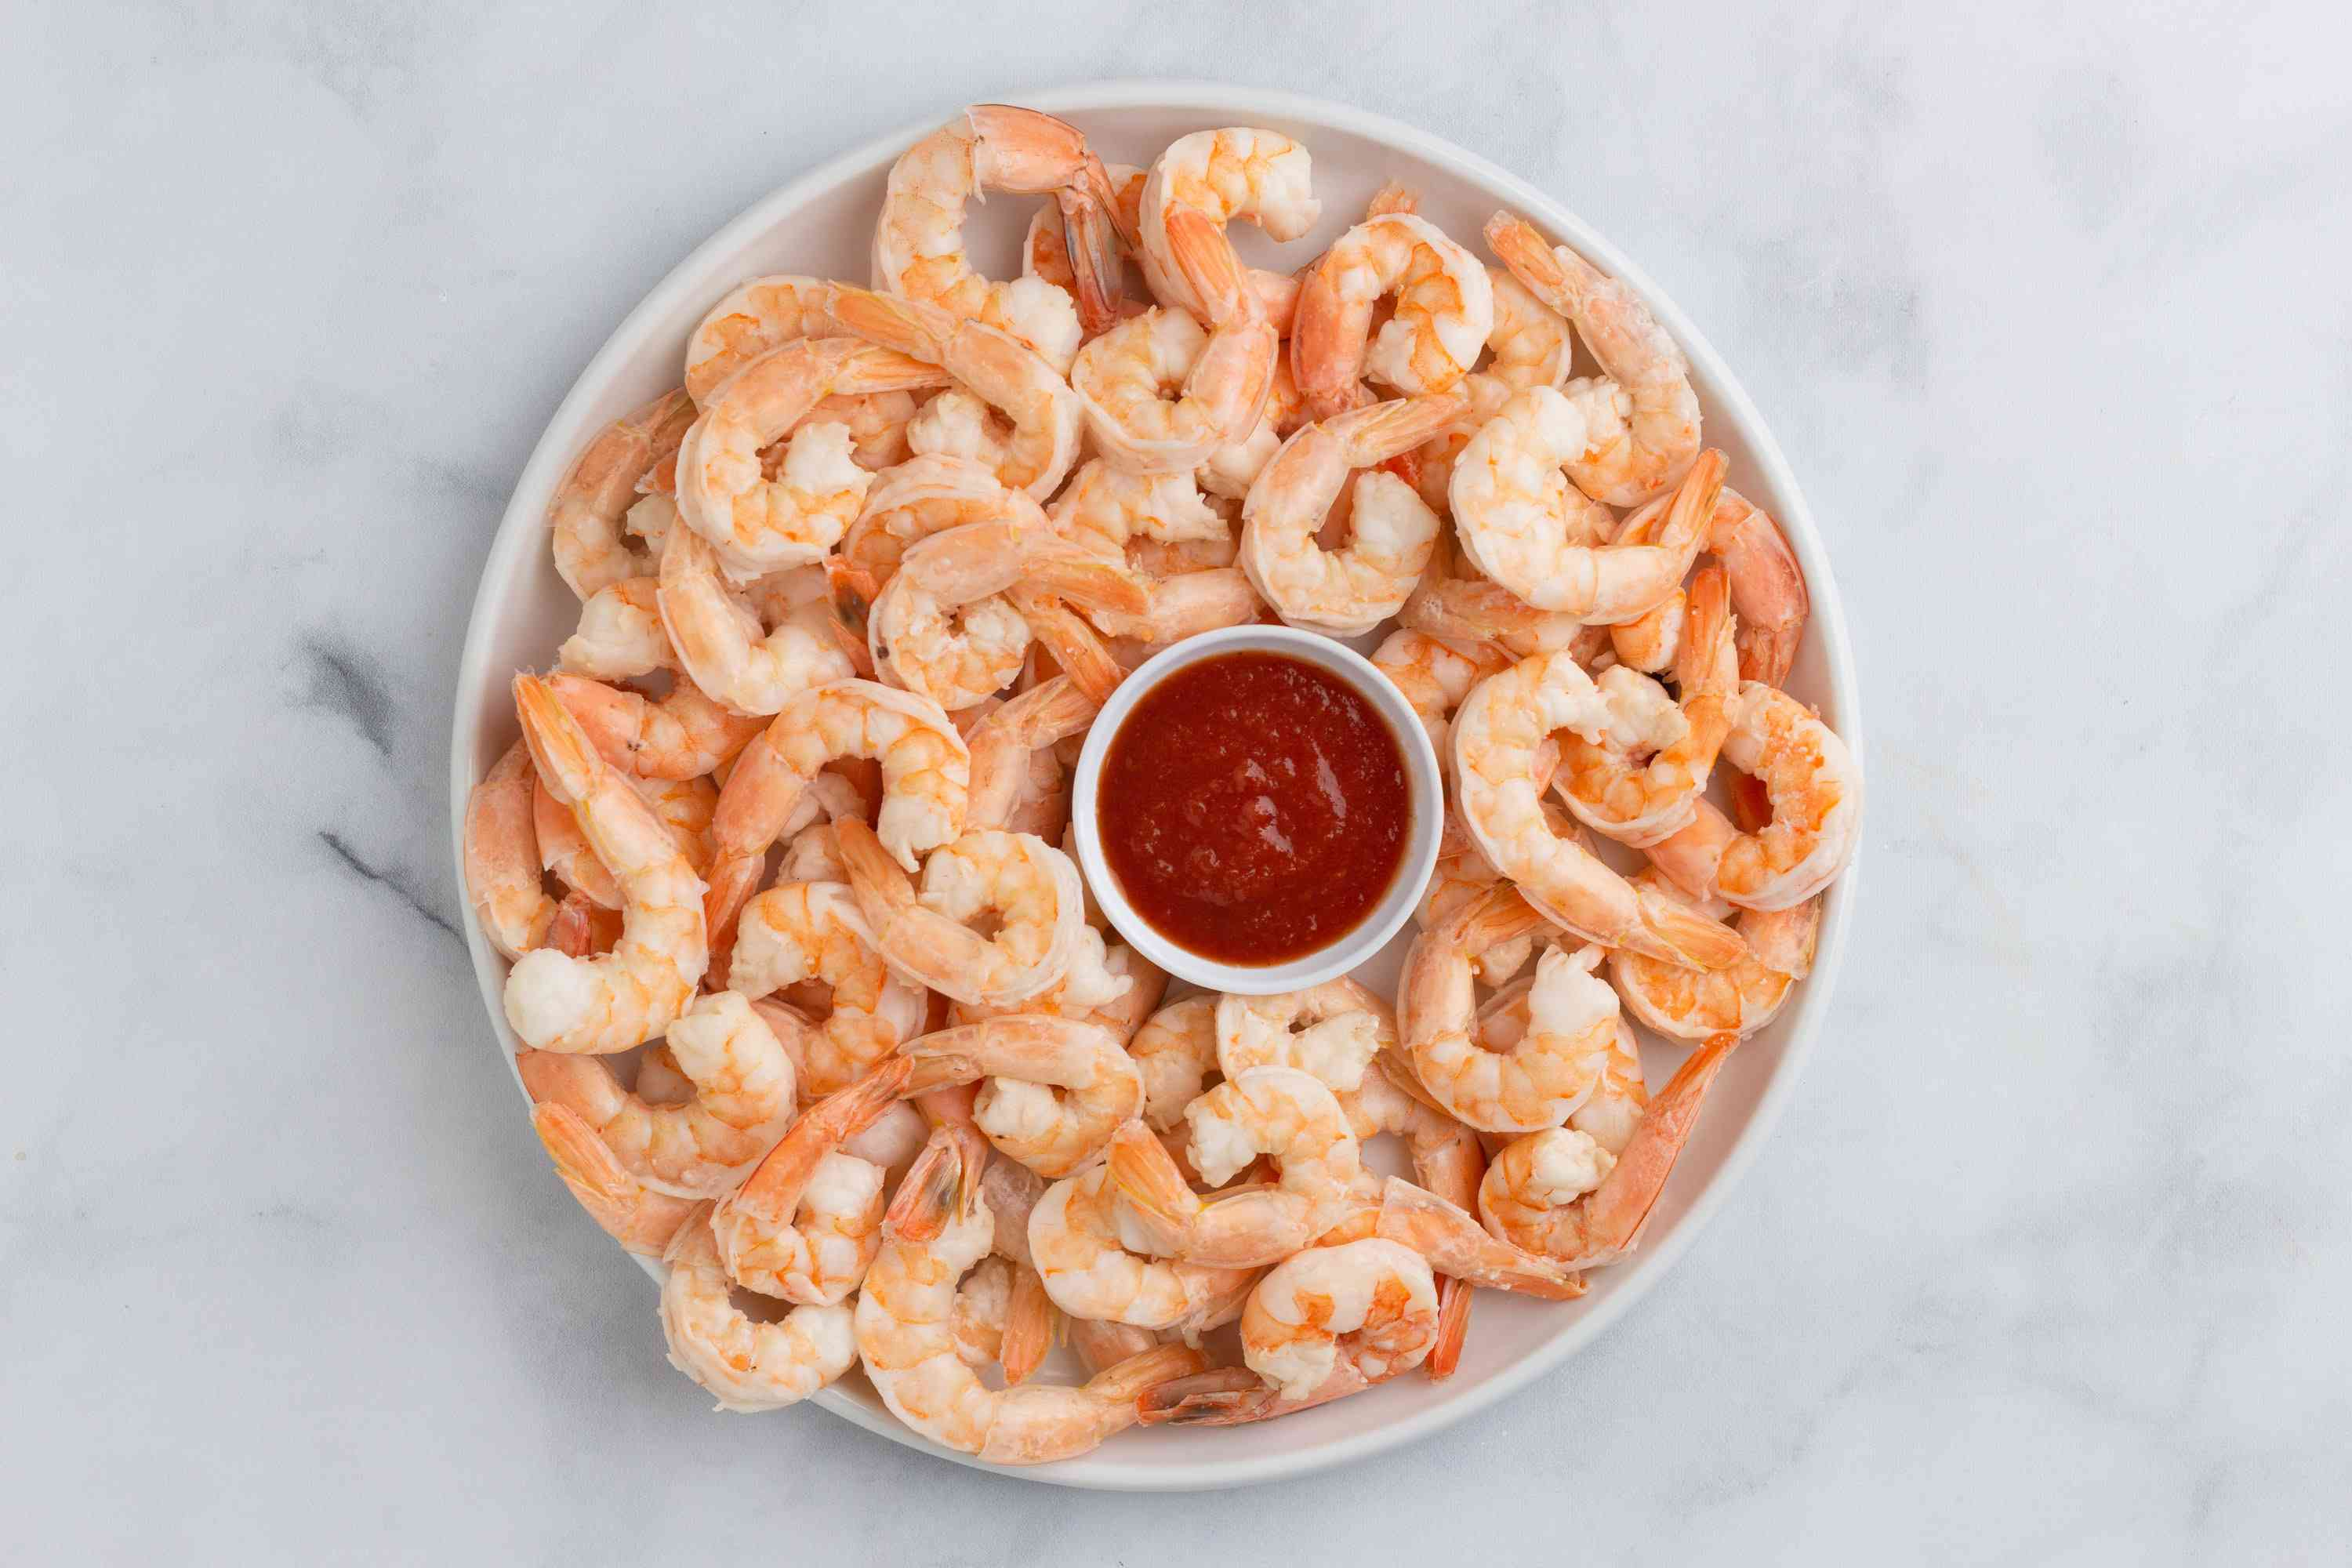 Beer-Steamed Shrimp on a plate, served with sauce